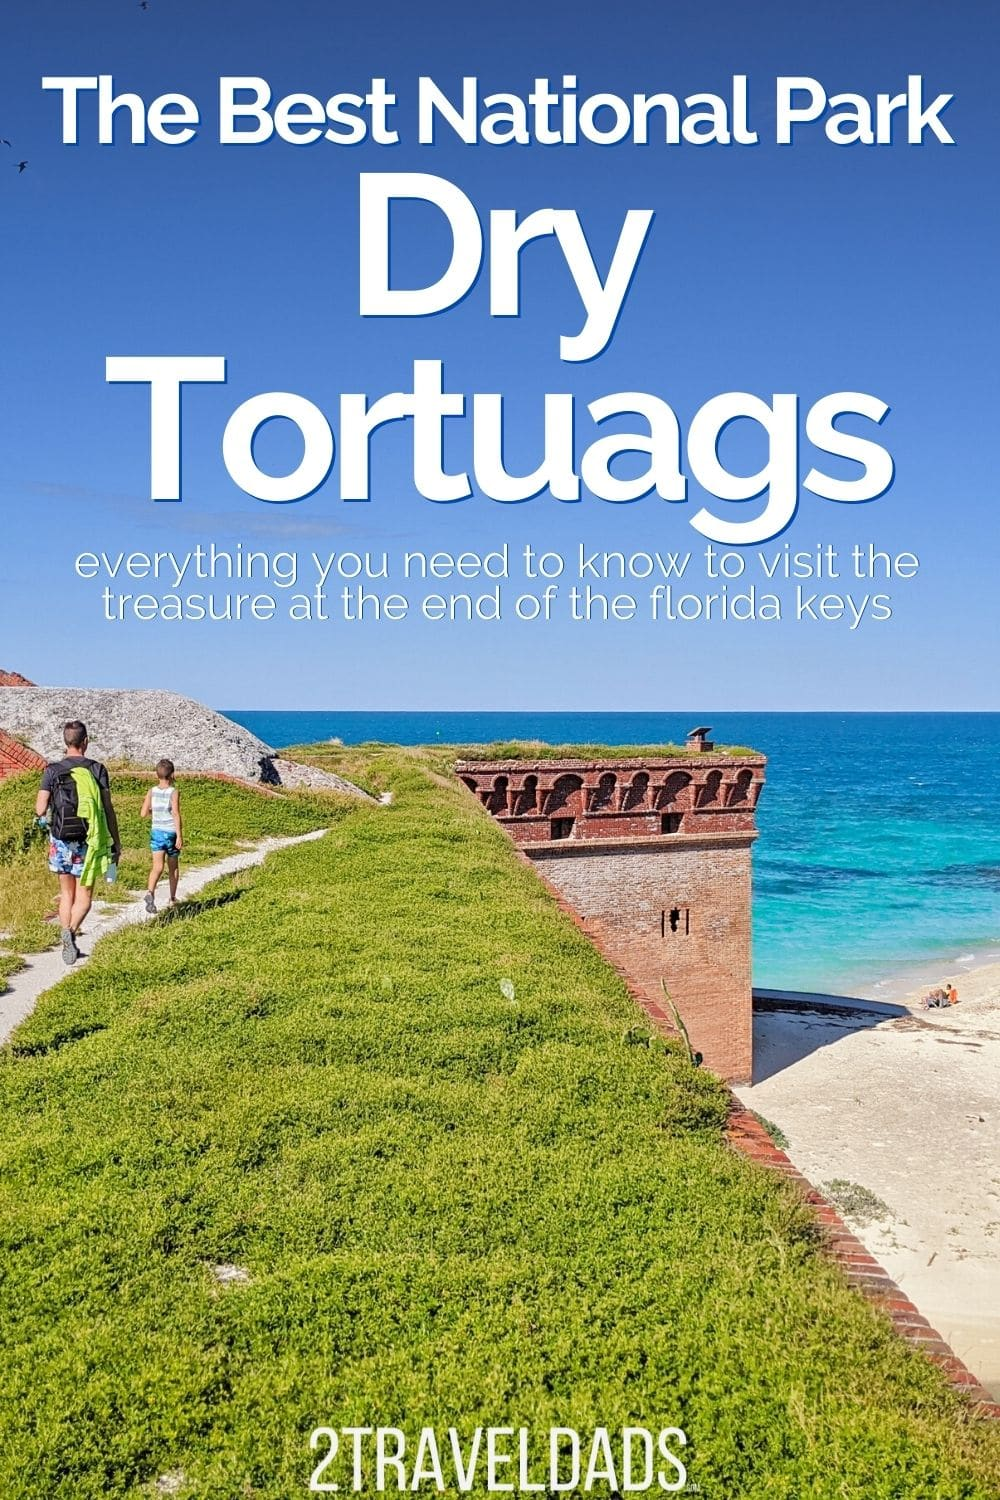 Dry Tortugas is one of the least visited National Parks in the USA. Everything you need to know for the ferry to Fort Jefferson, seaplane to Dry Tortugas, camping and visiting from Key West. Best of the Florida Keys.